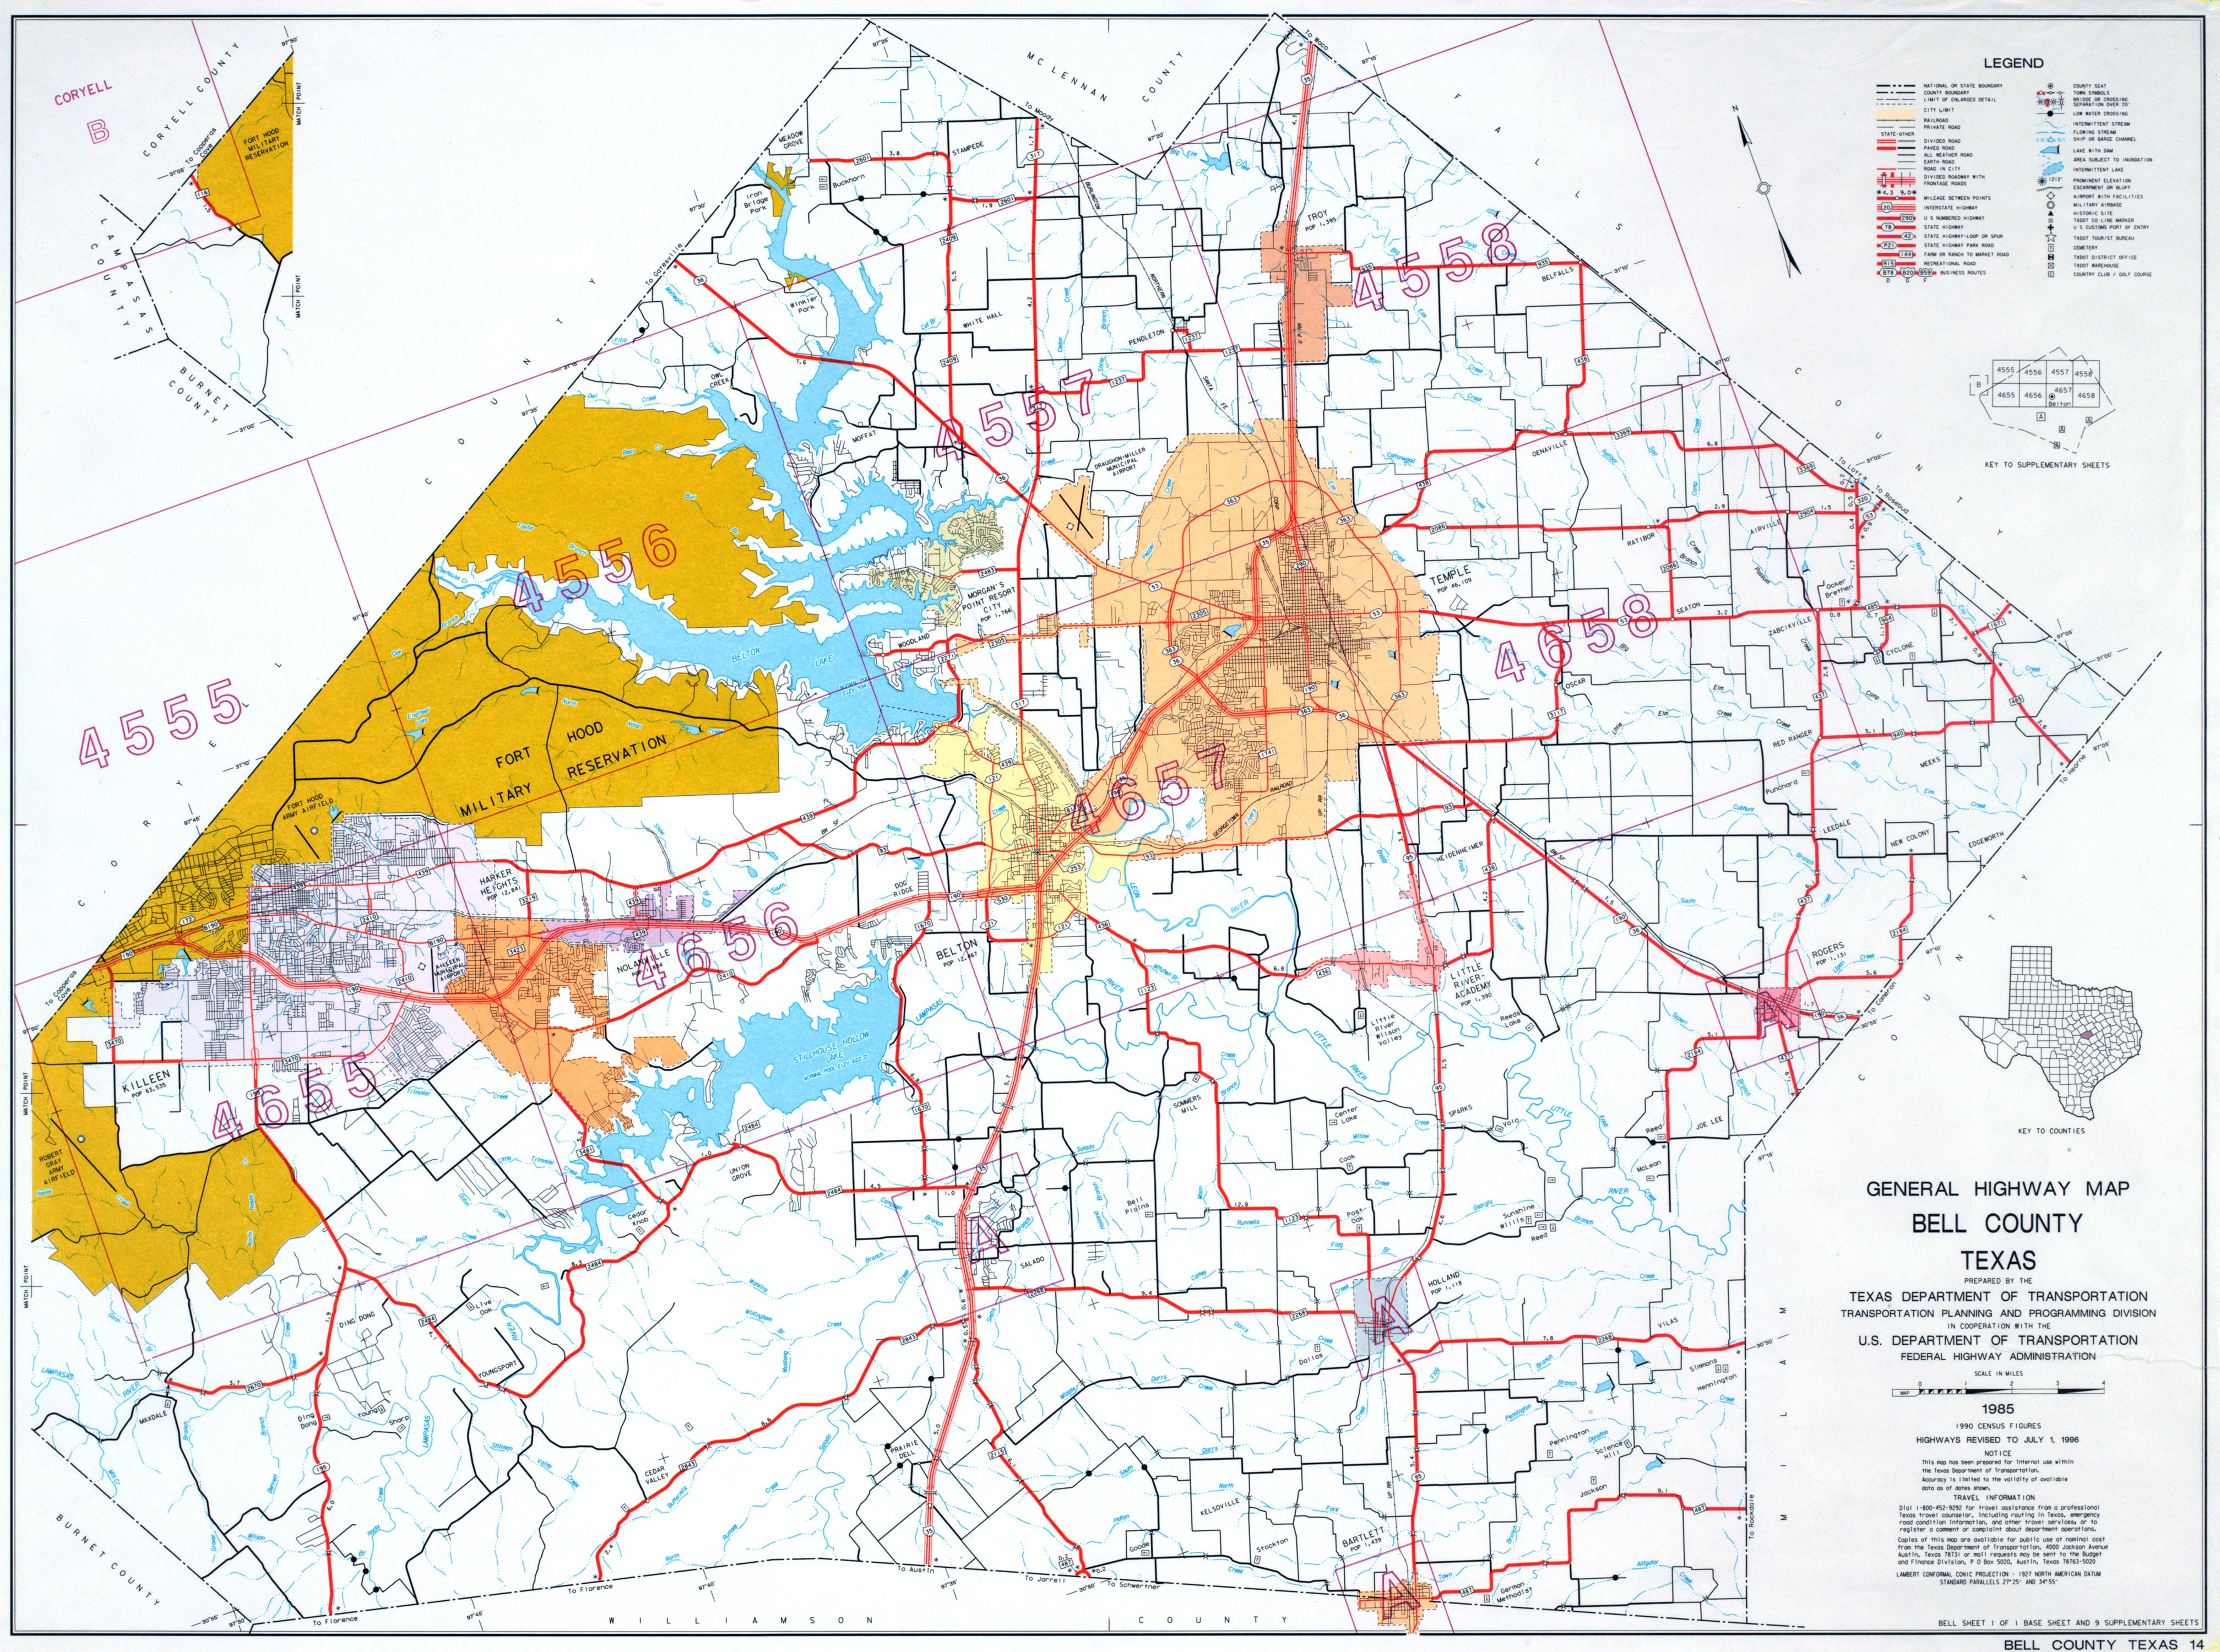 Texas County Highway Maps Browse - Perry-Castañeda Map Collection - Google Maps Texas Counties